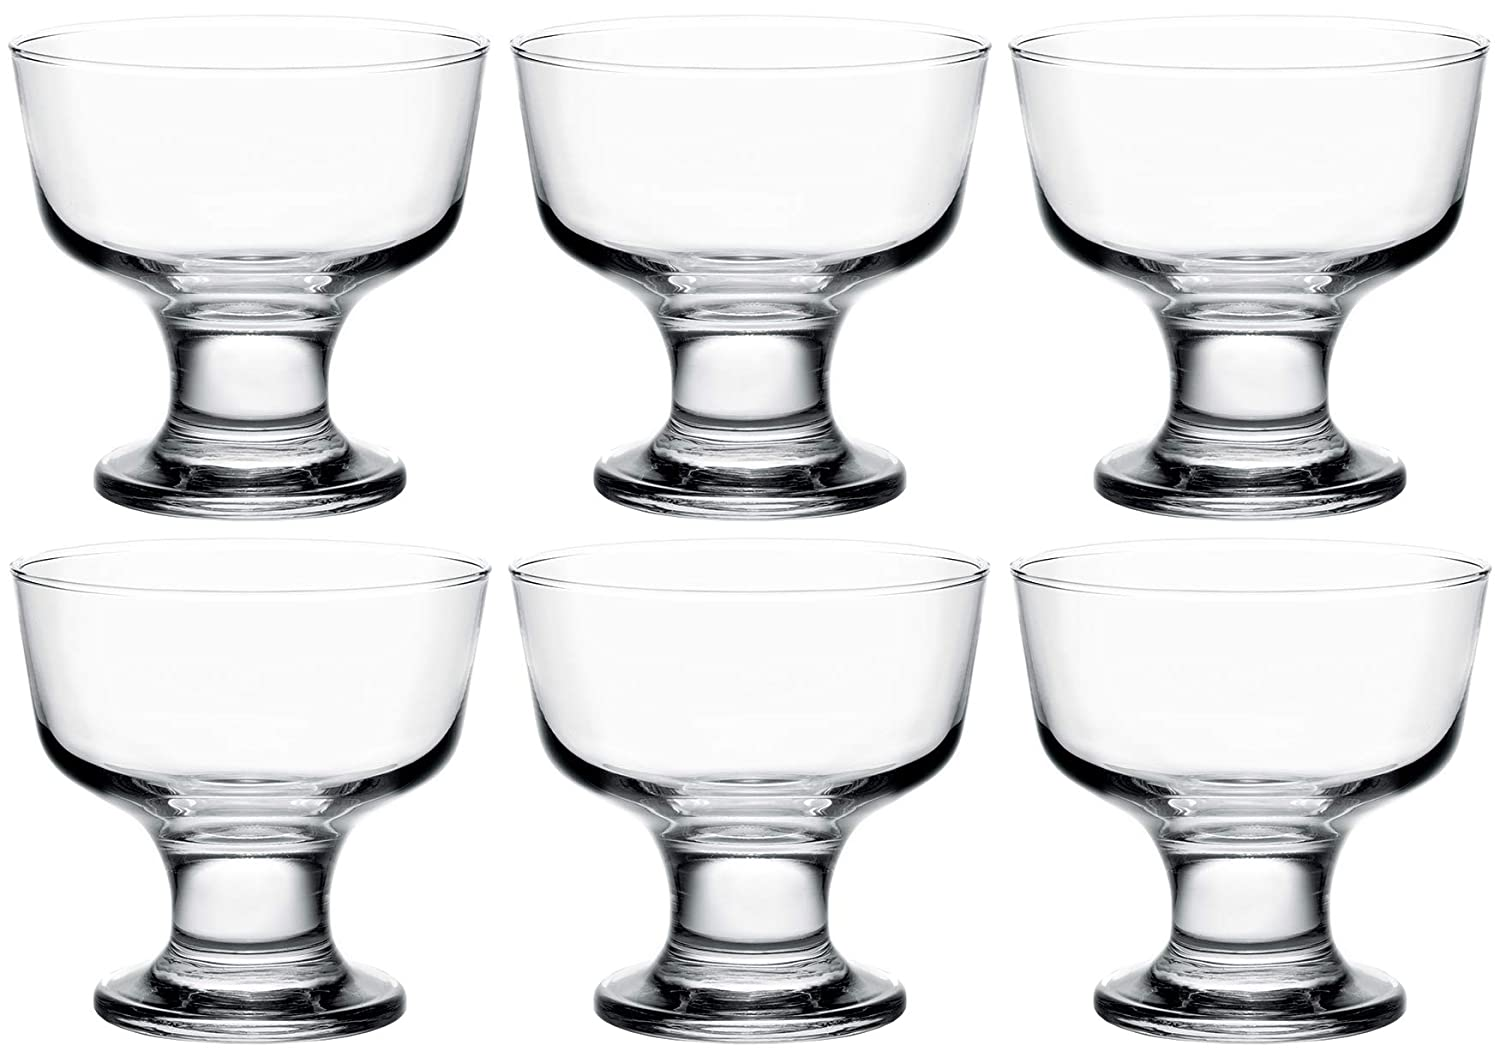 Destina Classic Footed Dessert Cups 9.75 OZ Set of 6 Clear Glass Ice Cream Bowls